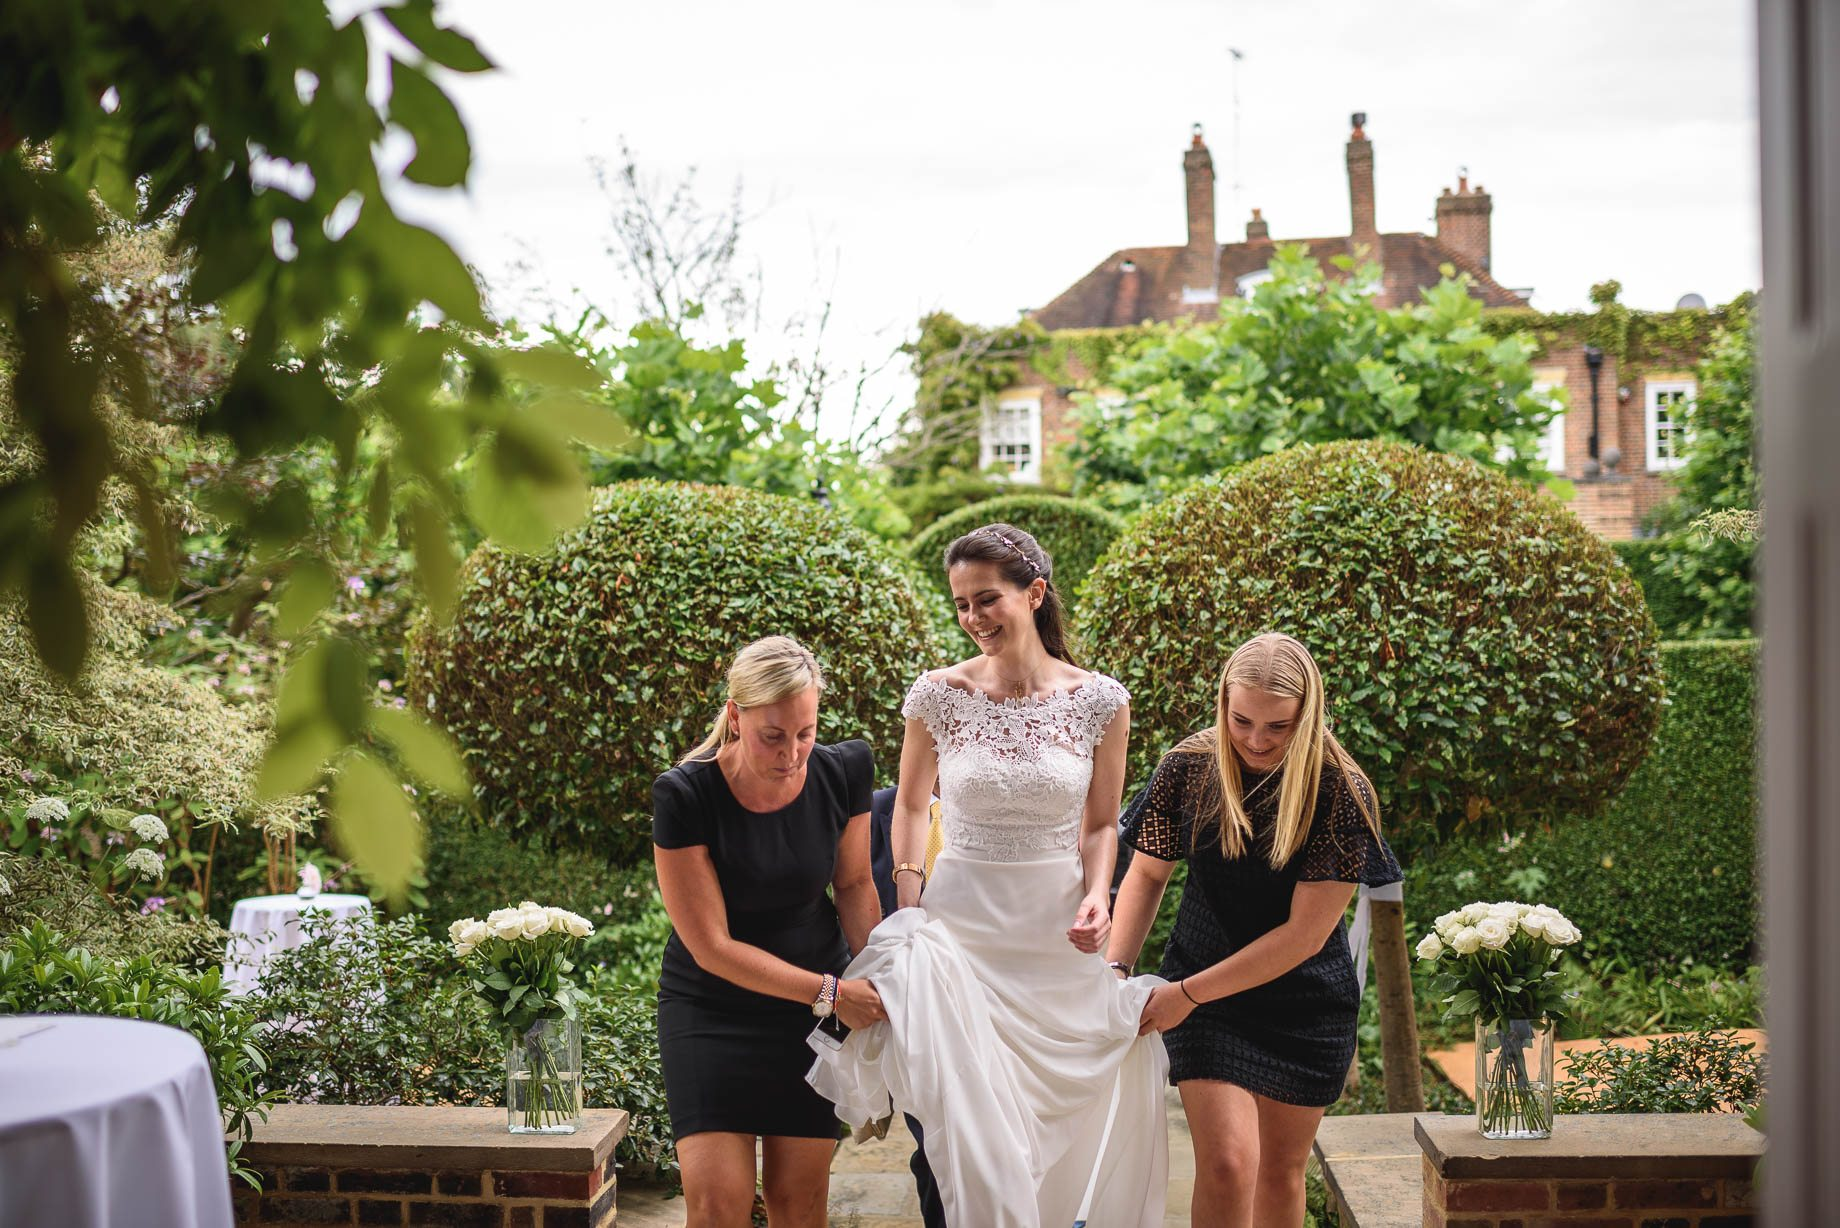 London wedding photography - Claire and JW - Guy Collier Photography (65 of 153)